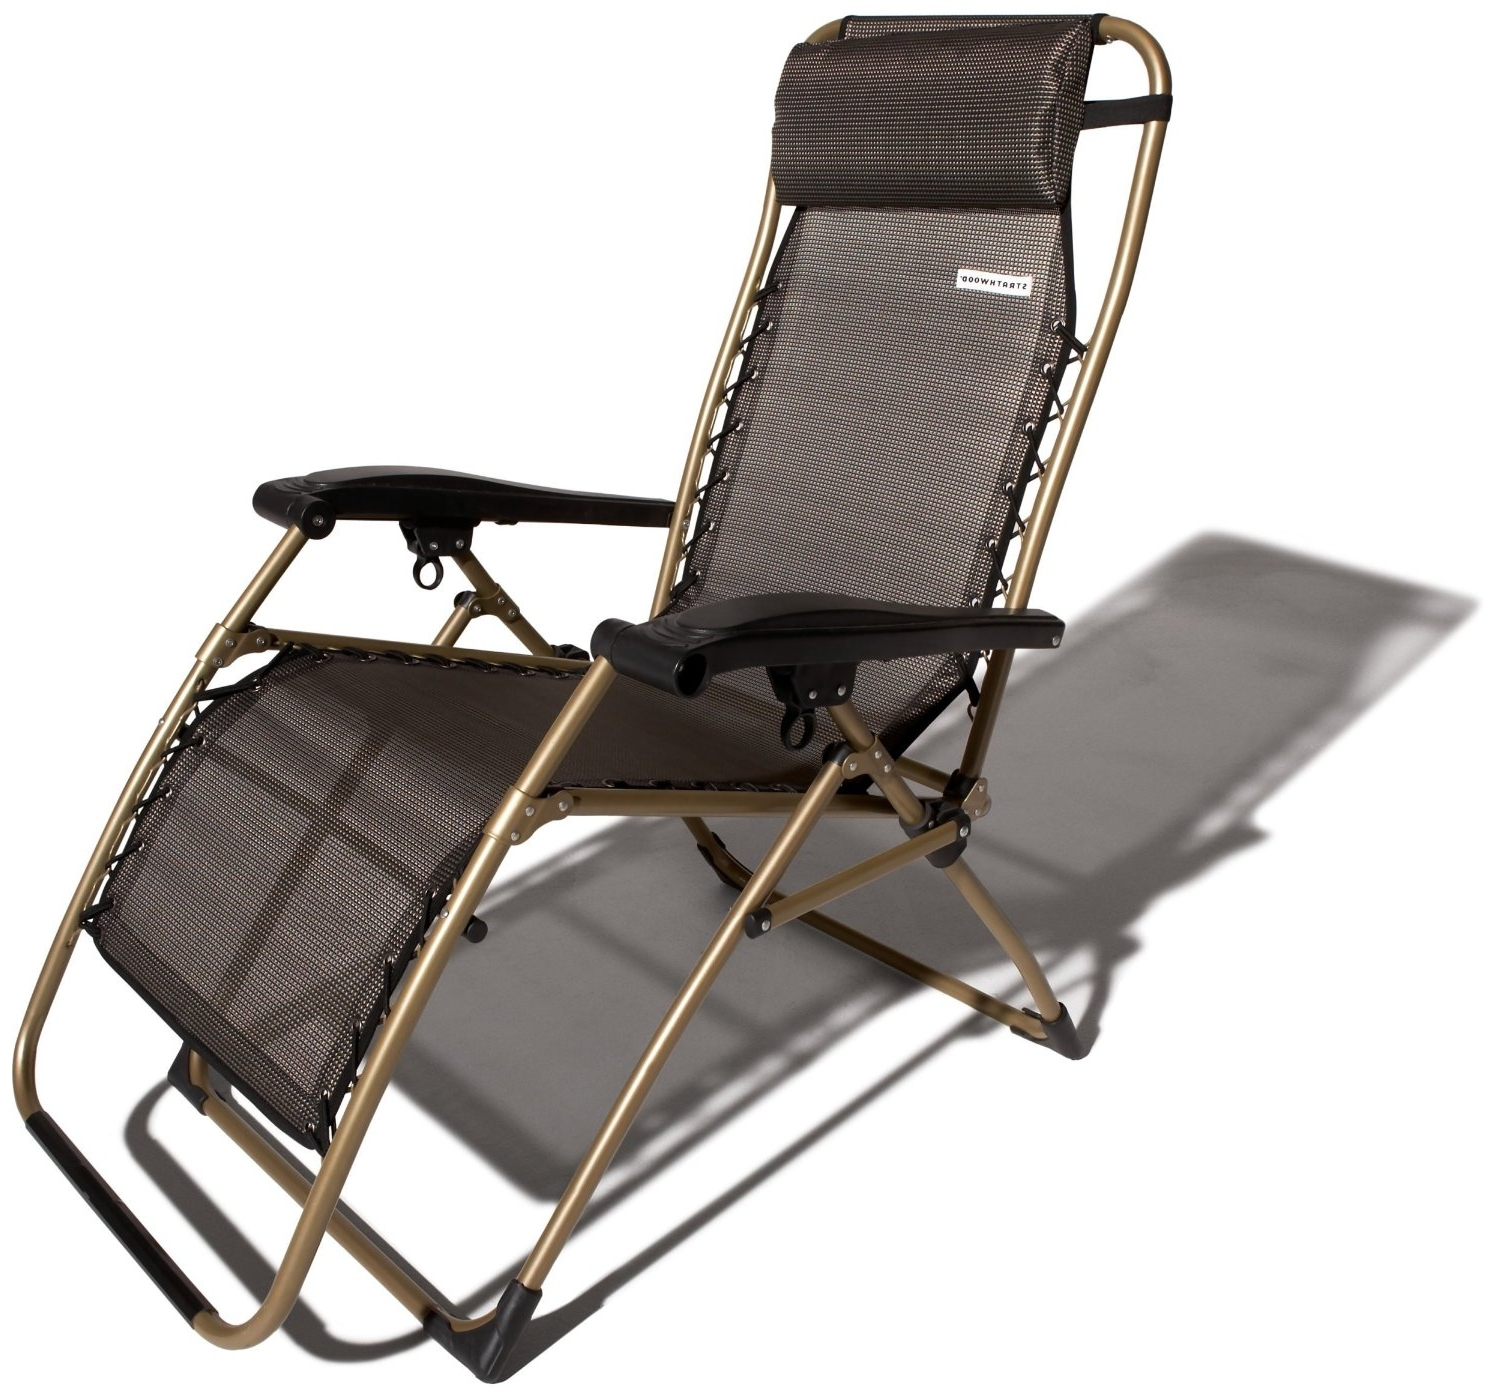 Elegant Patio Recliner Chair Patio Furniture Chaise Lounge Within Best And Newest Folding Chaise Lounge Lawn Chairs (View 1 of 15)